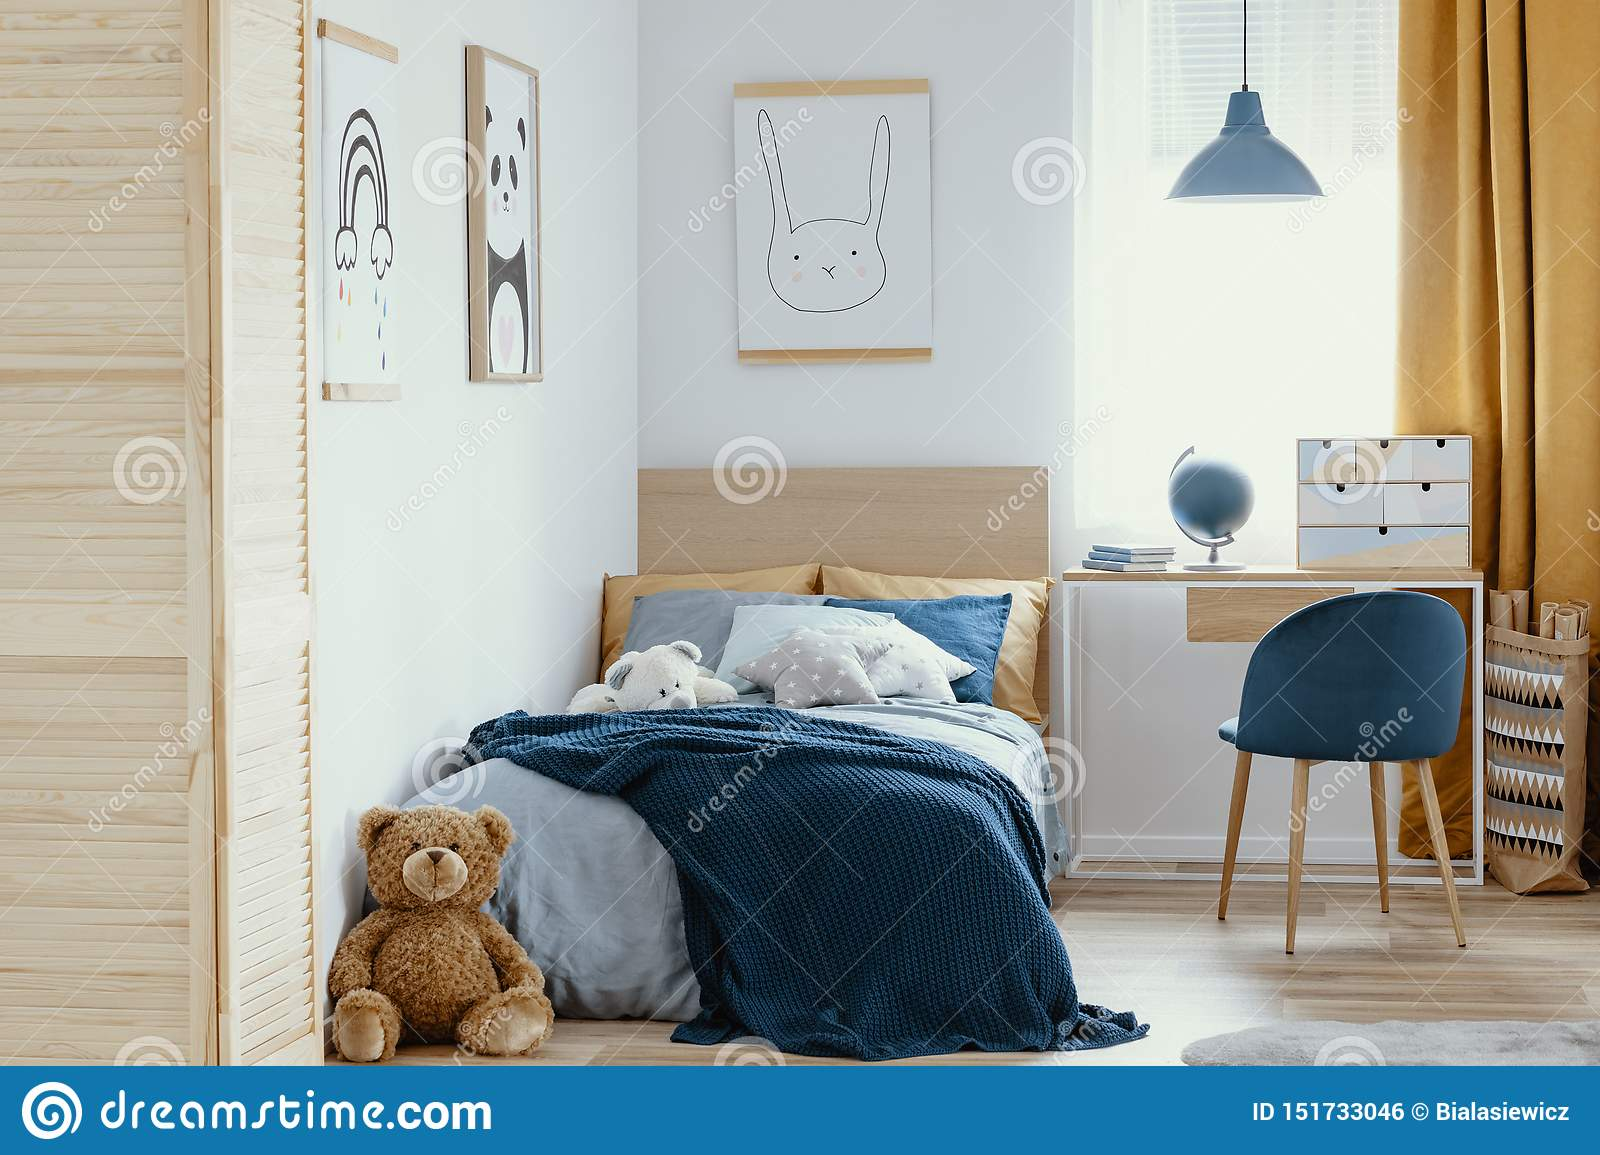 Image of: Desk Chair And Single Bed With Blue Bedding In Cozy Bedroom Interior For Children Stock Photo Image Of Decor Children 151733046